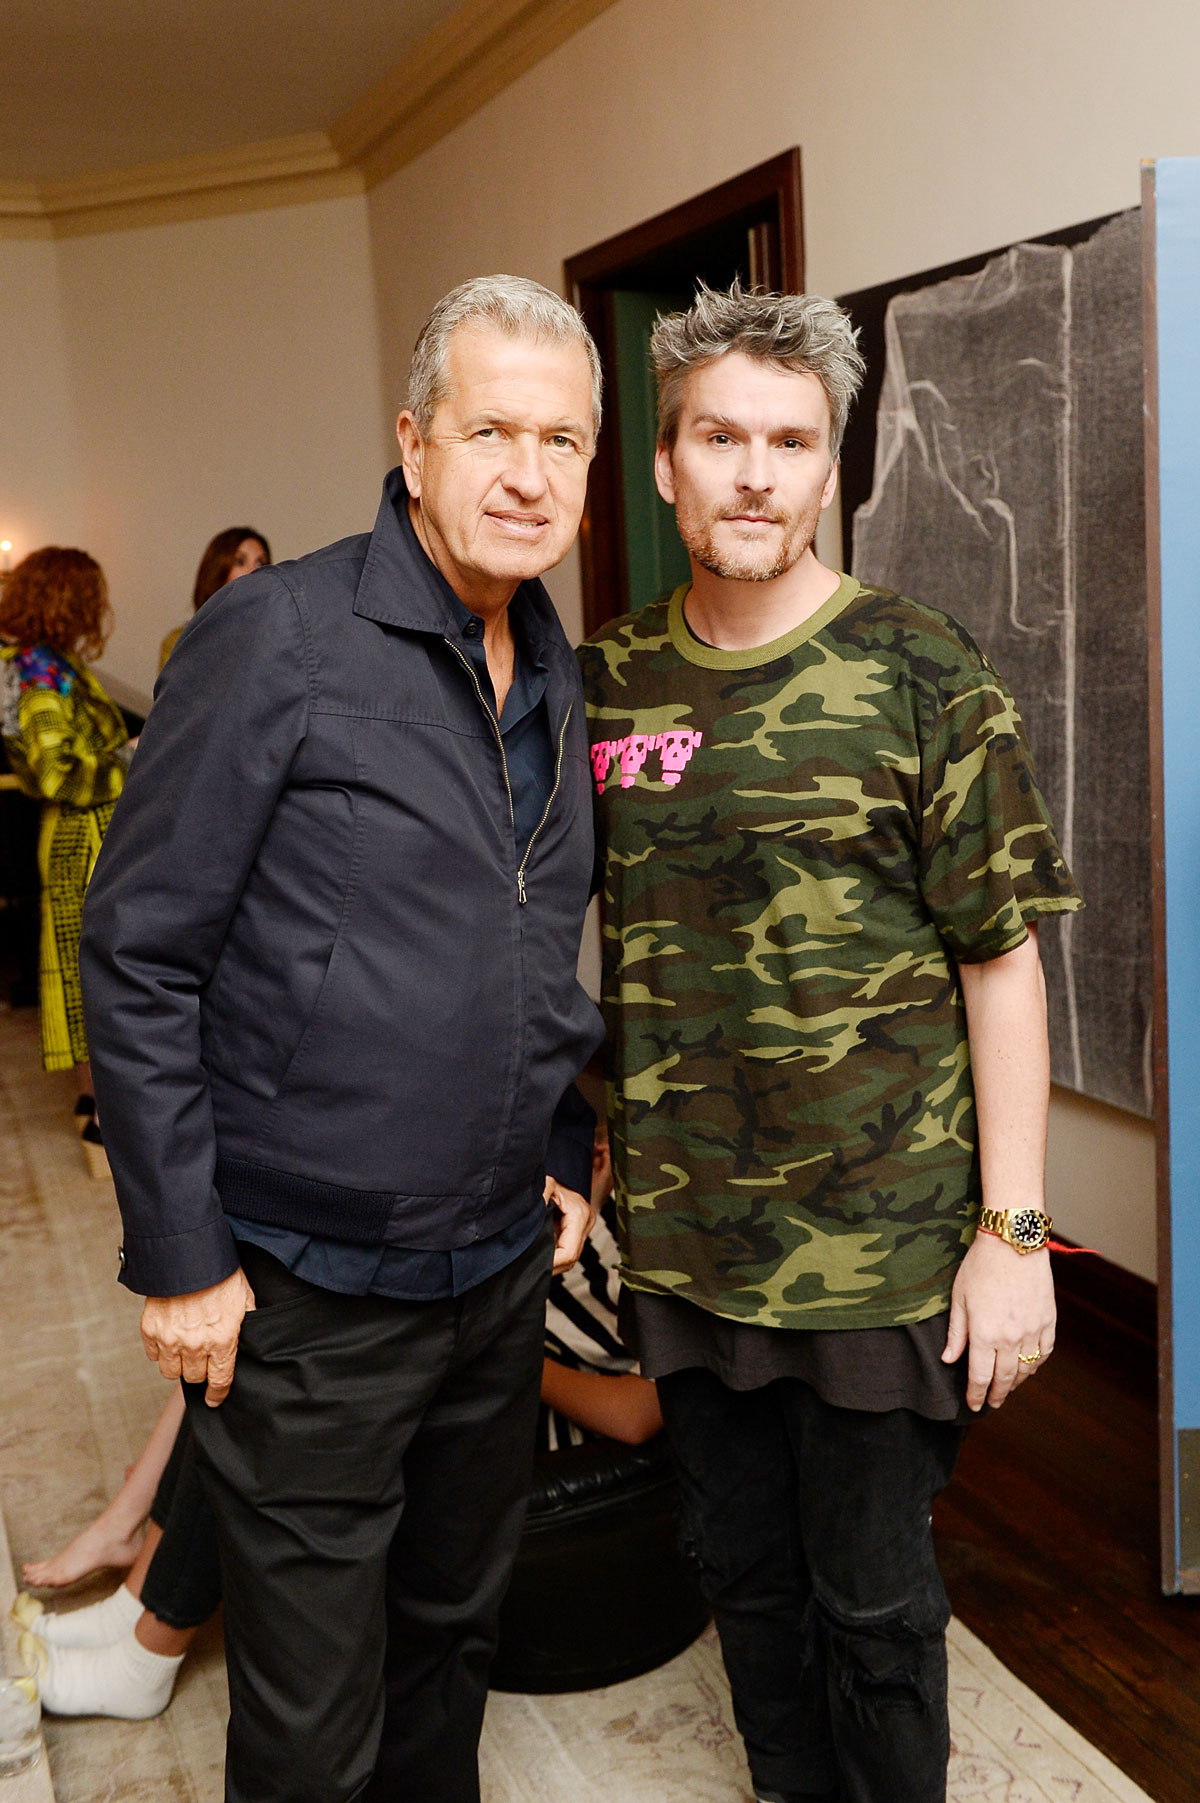 Mario Testino and Balthazar Getty celebrate the launch of London Uprising Fifty Fashion Designers One City on April 18, 2017 in Los Angeles, California. (Photo by Stefanie Keenan/Getty Images for Tania Fares)